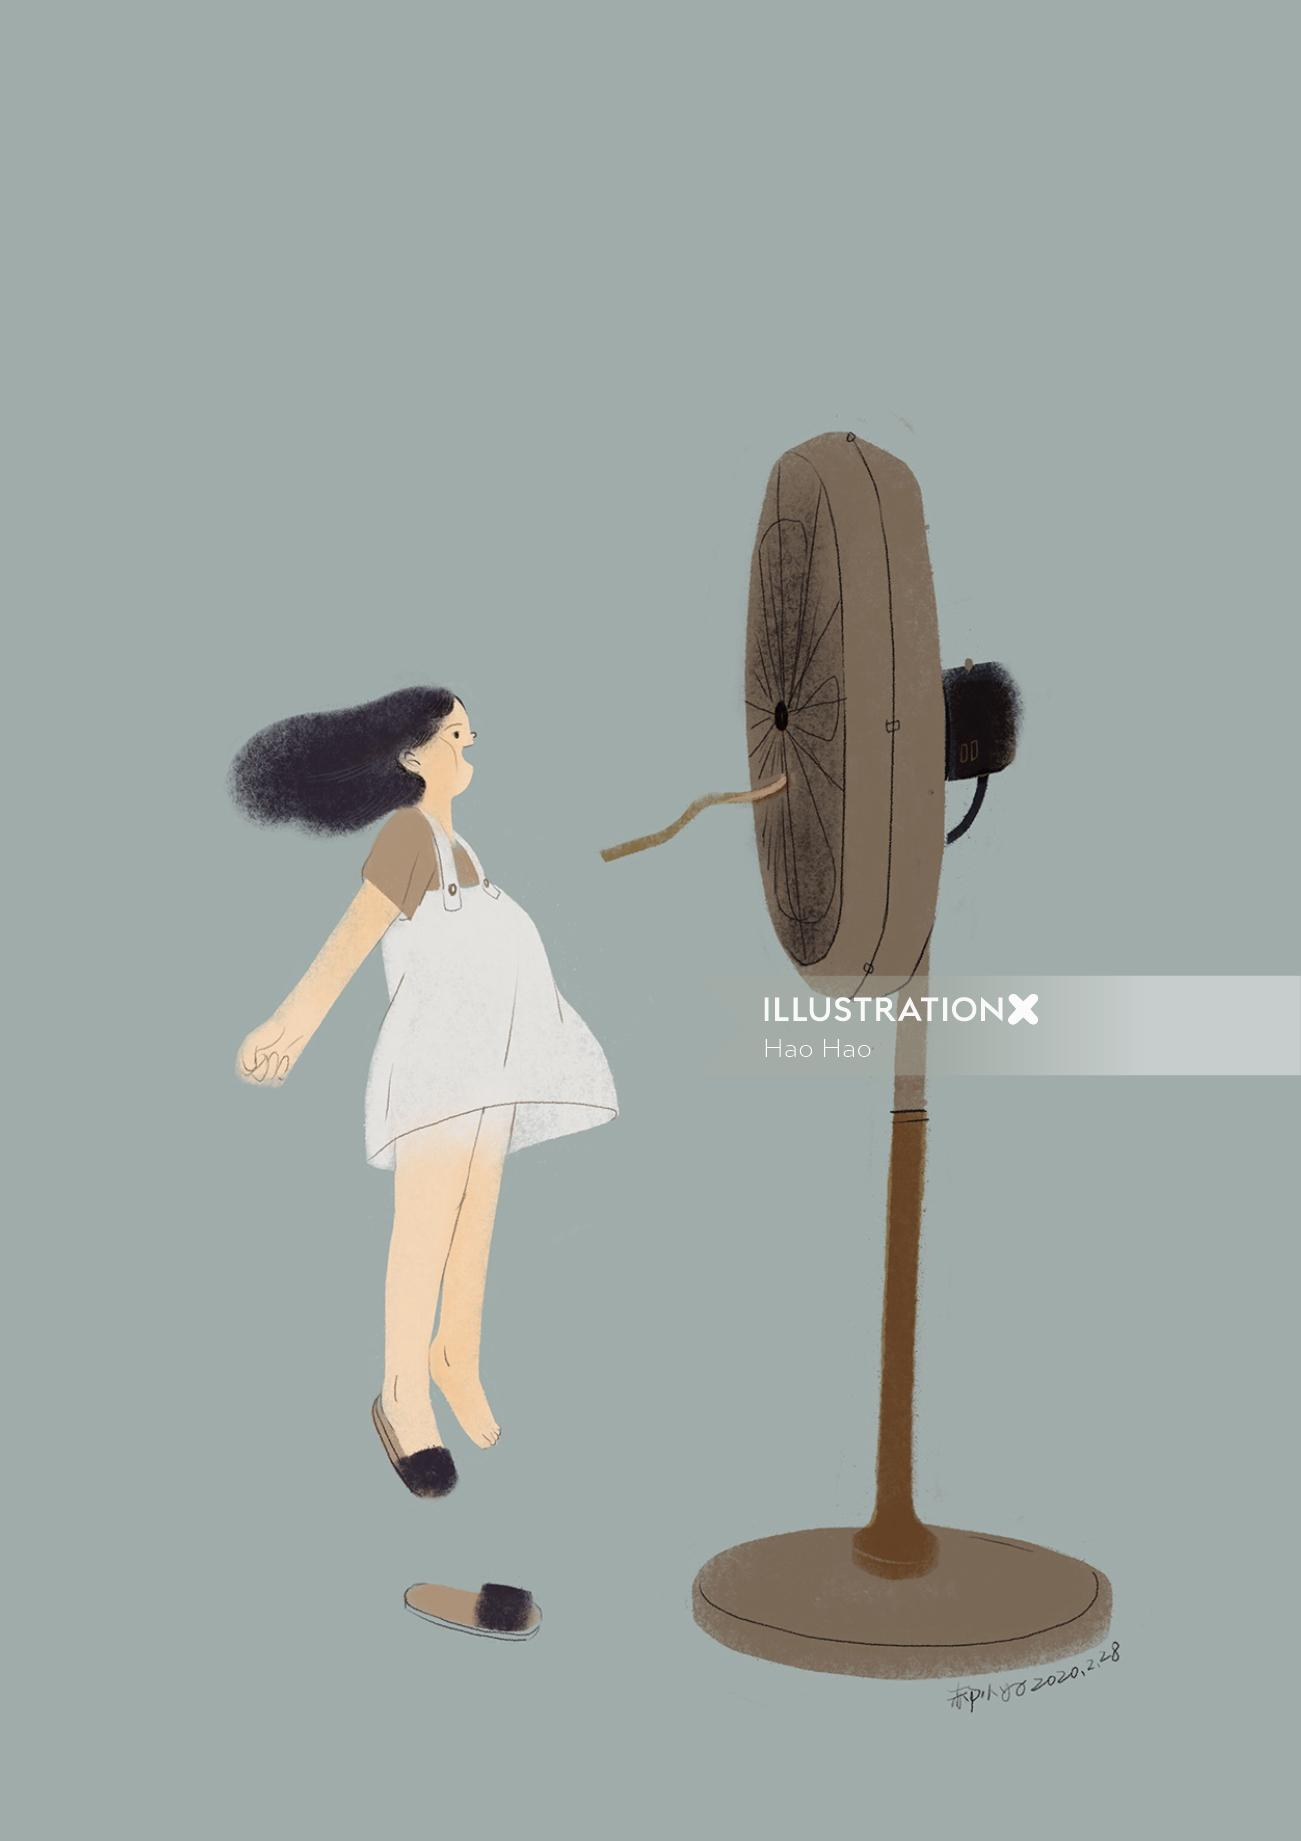 Girl playing with Pedestal Fan illustration